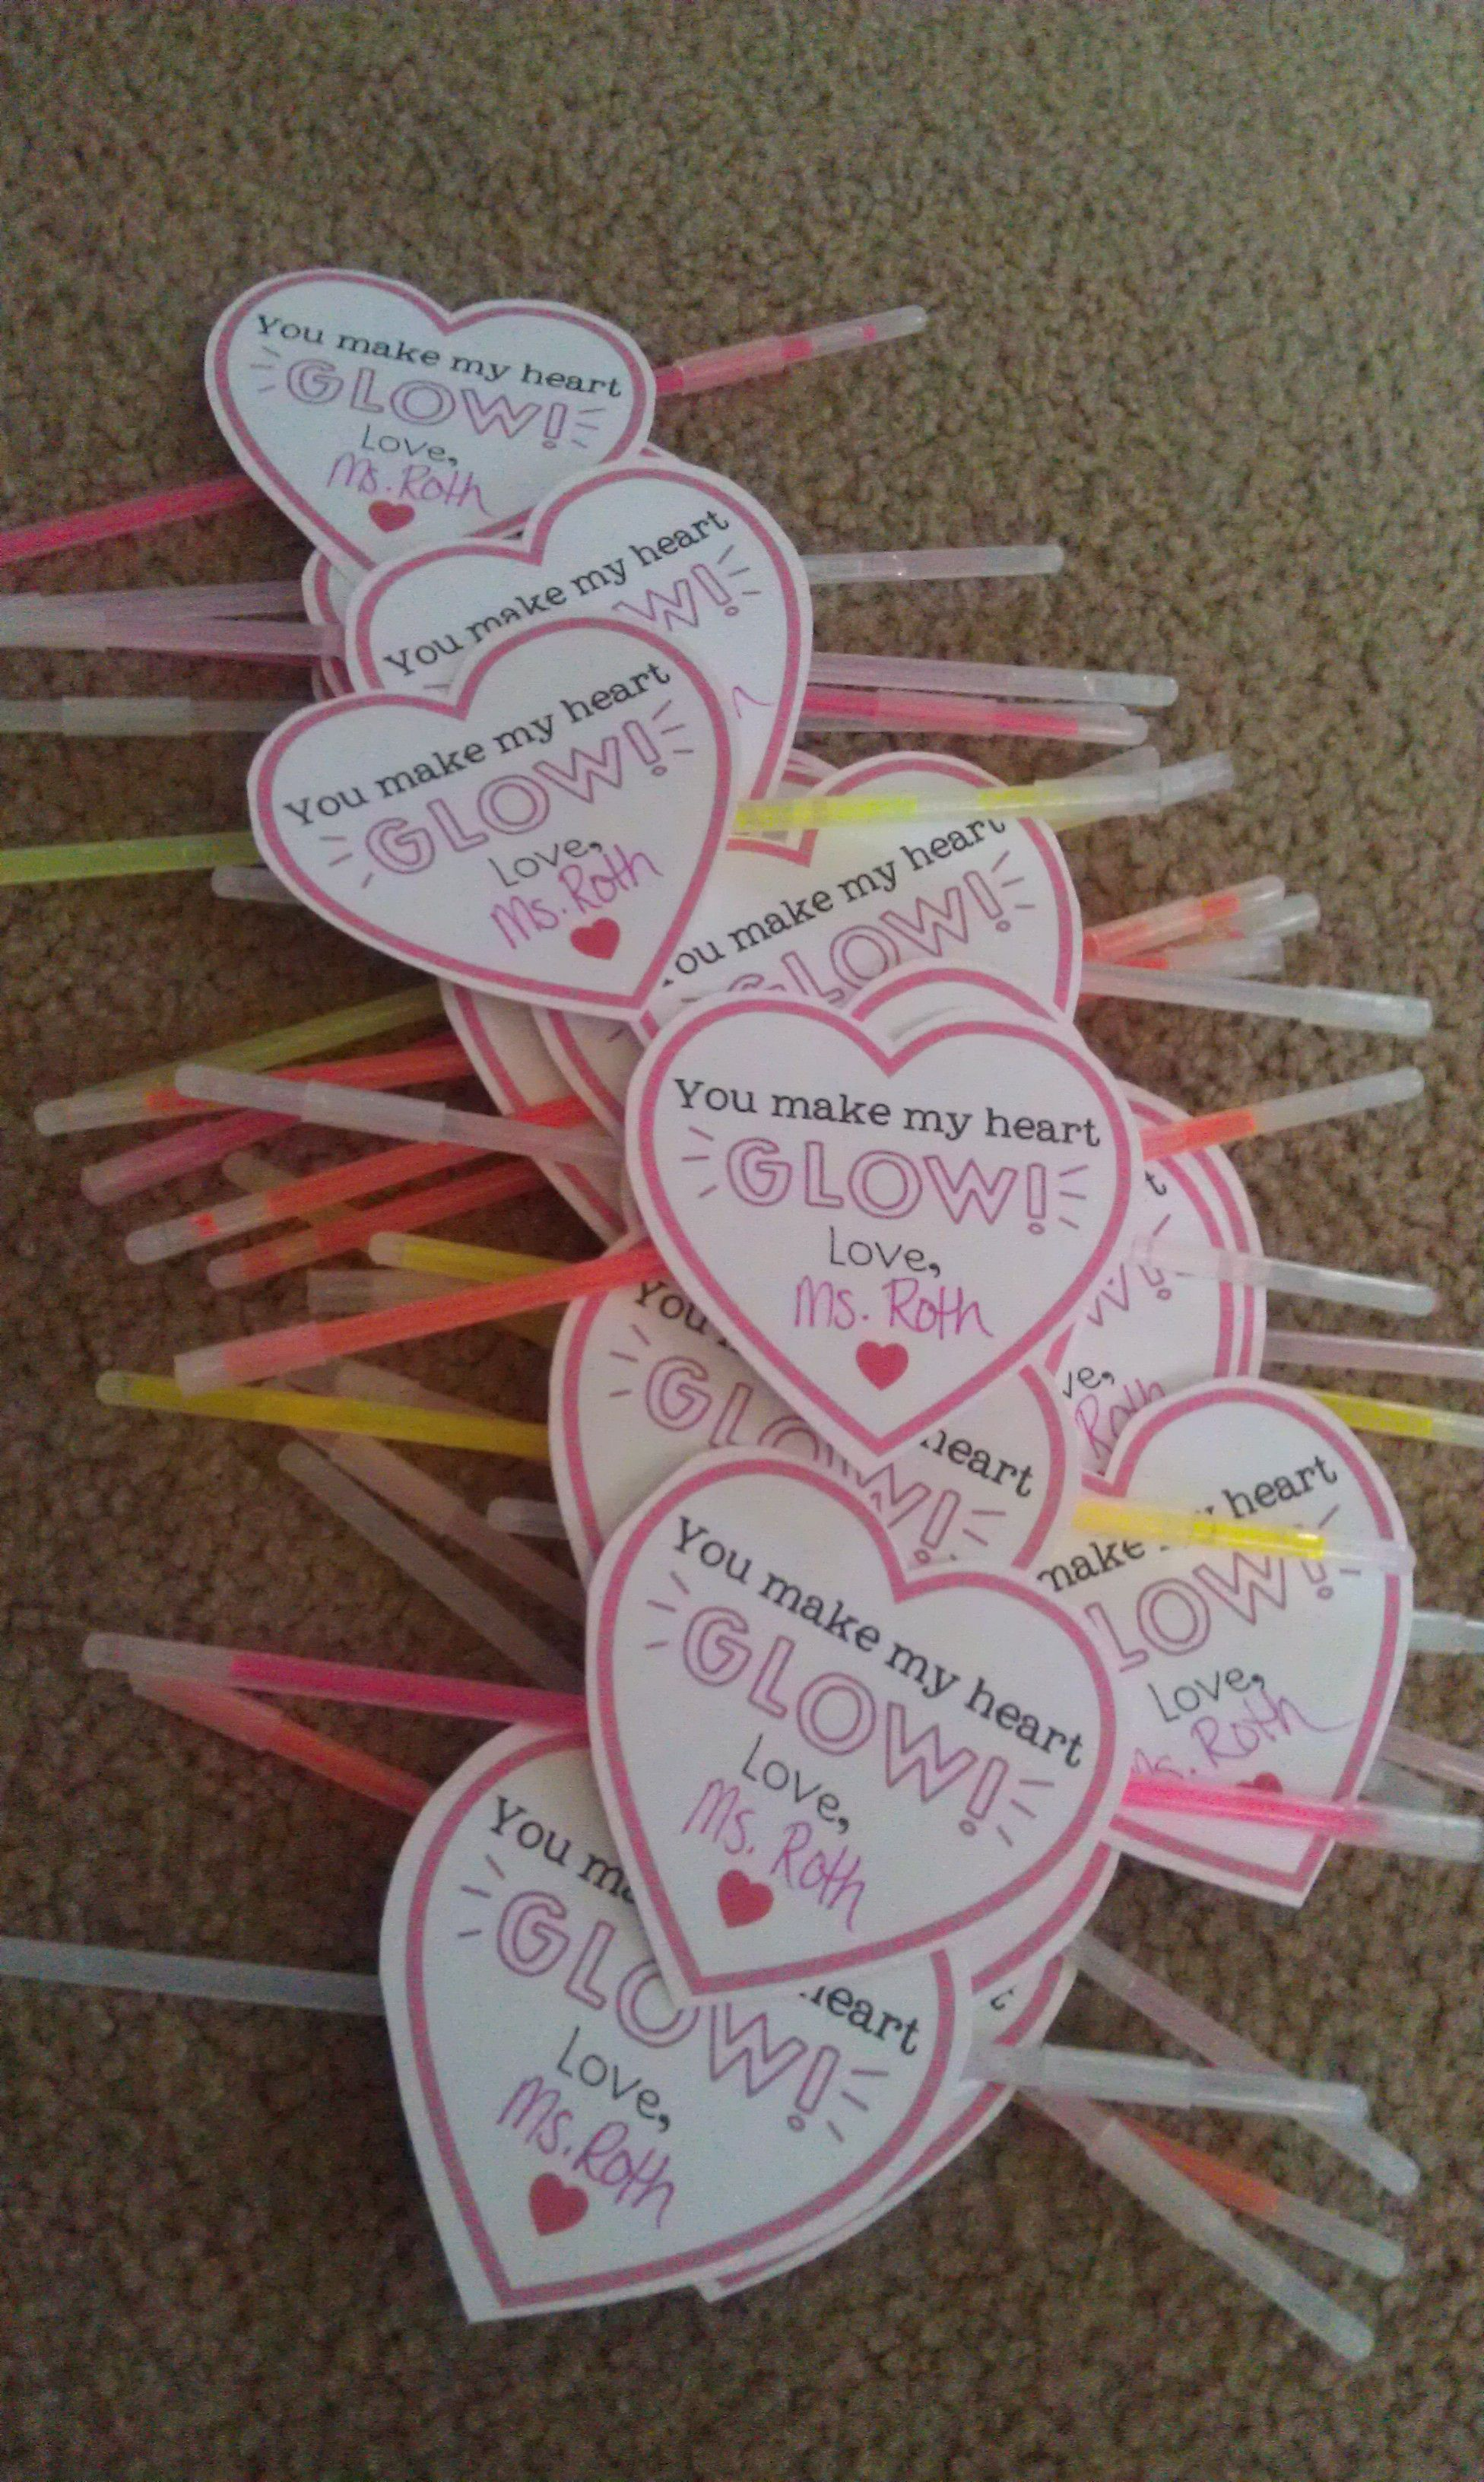 Free Printable Glow Stick Valentines - Little Red Window |Pinterest Glow Stick Valentines